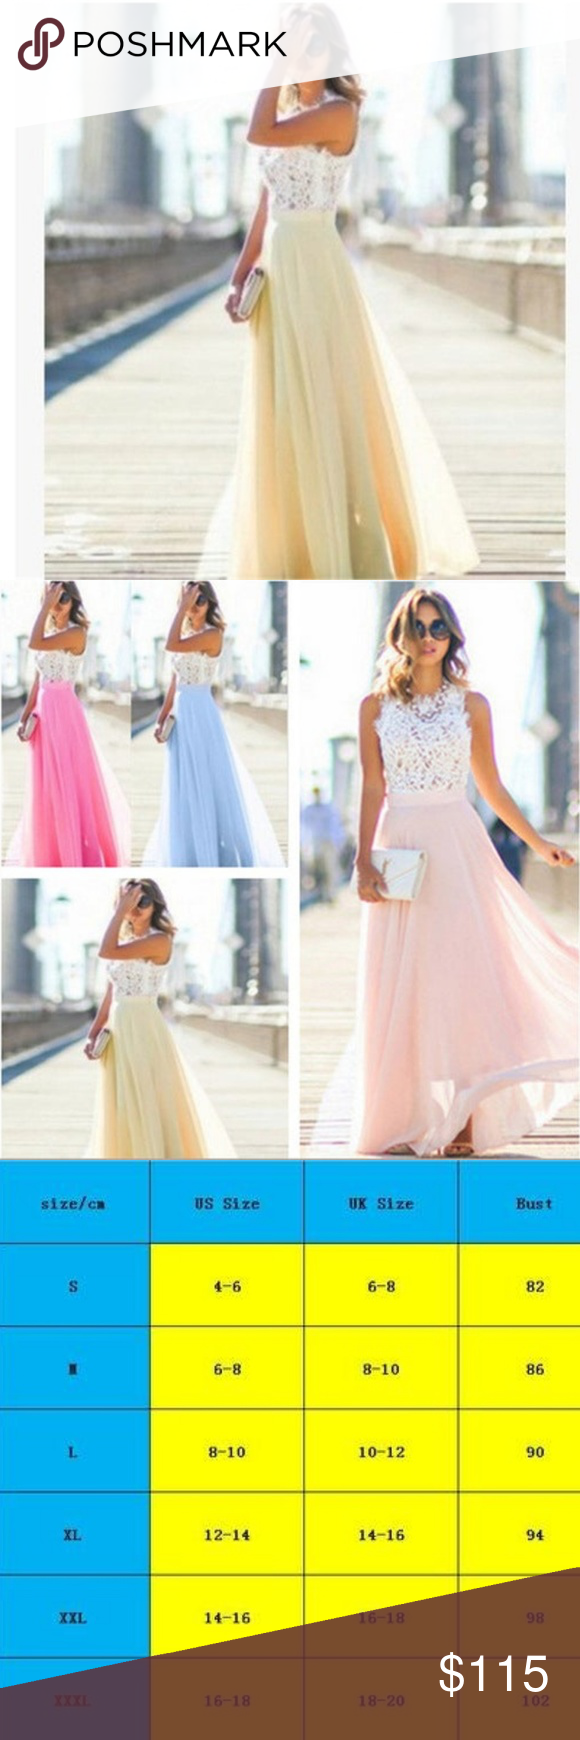 Elegant Crochet Lace Chiffon Sleeveless Maxi Dress